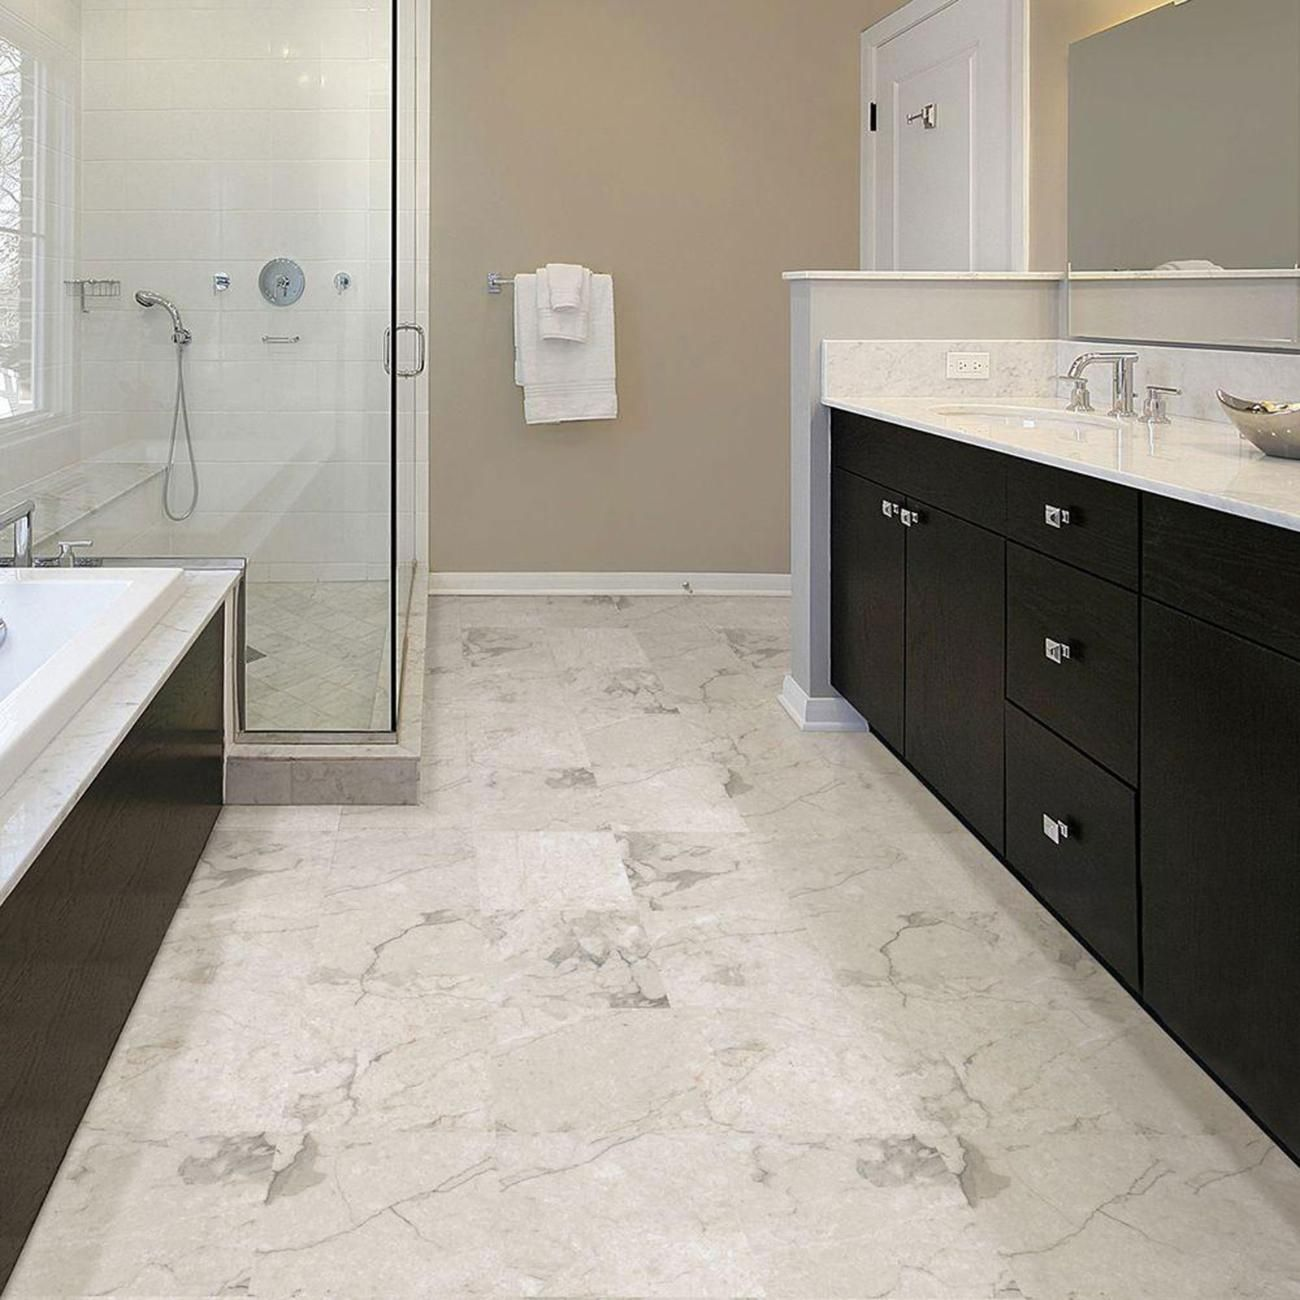 ideas for bathrooms decorating%0A   budgetfriendly marble alternatives